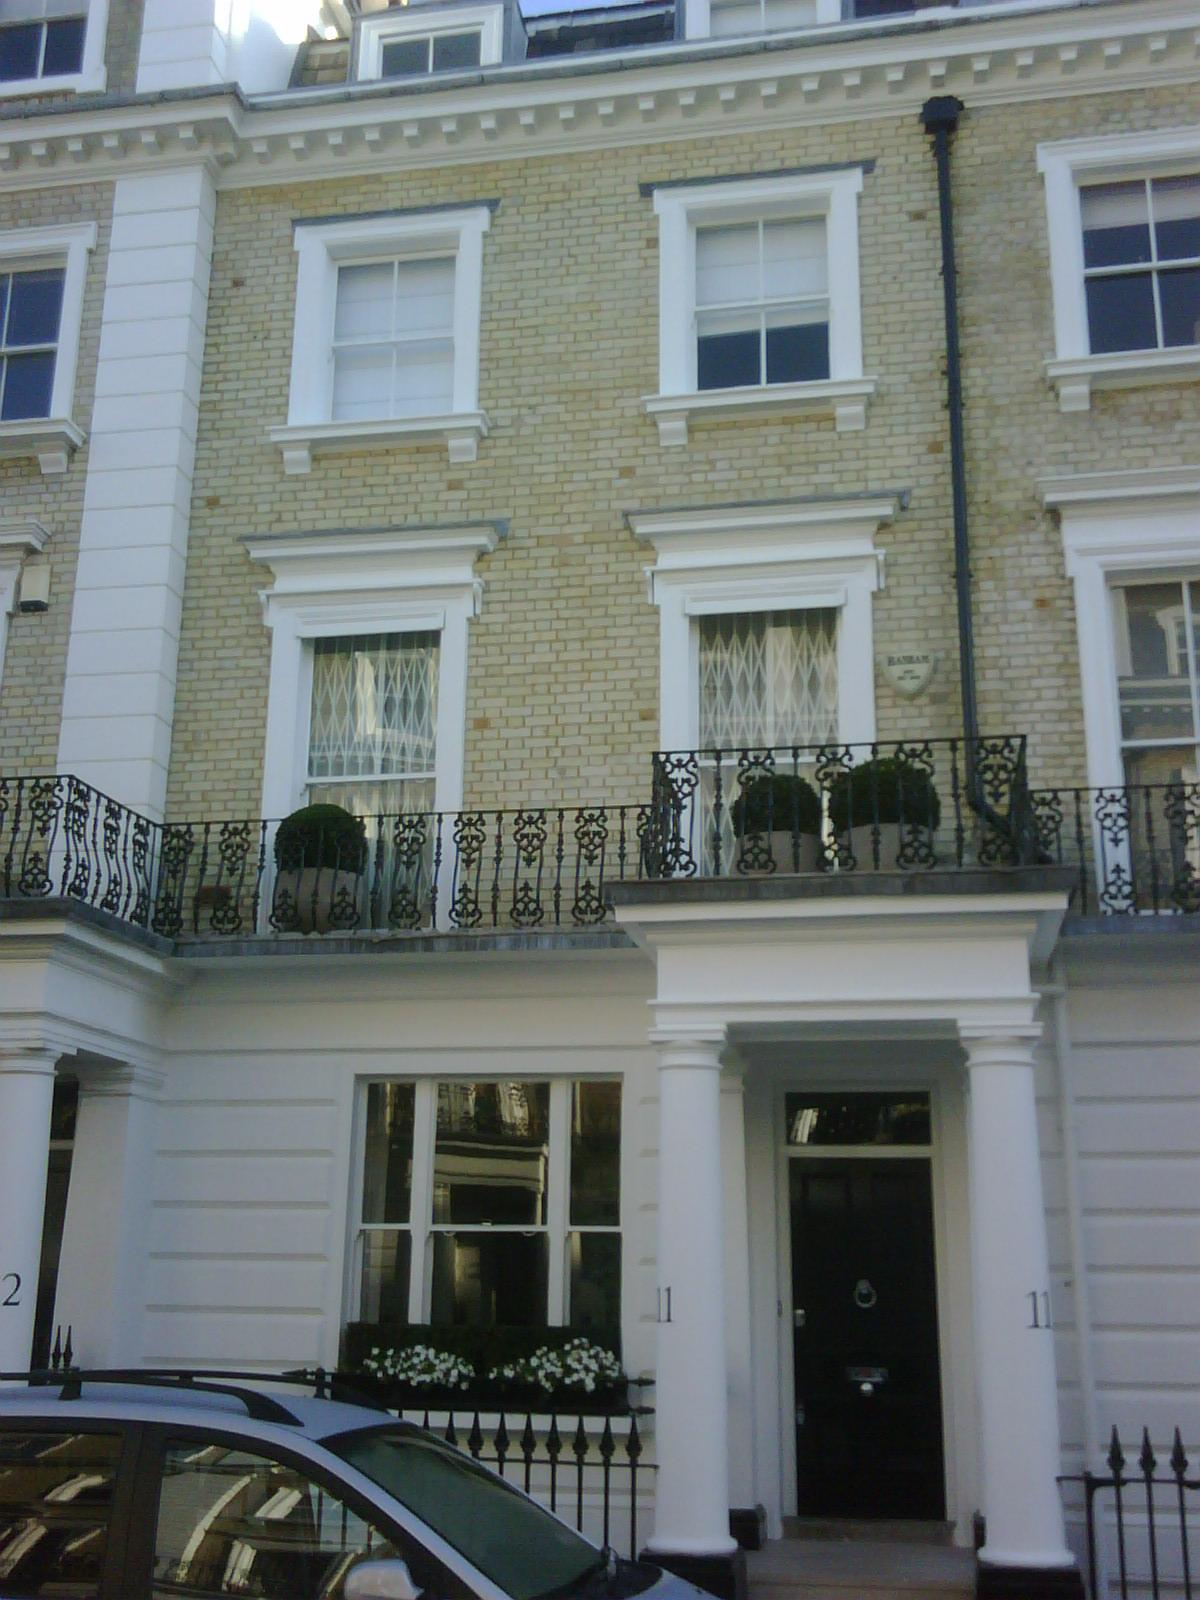 Brick Cleaning - White Suffolk /gaults - cleaned not pointed Neville St, SW7